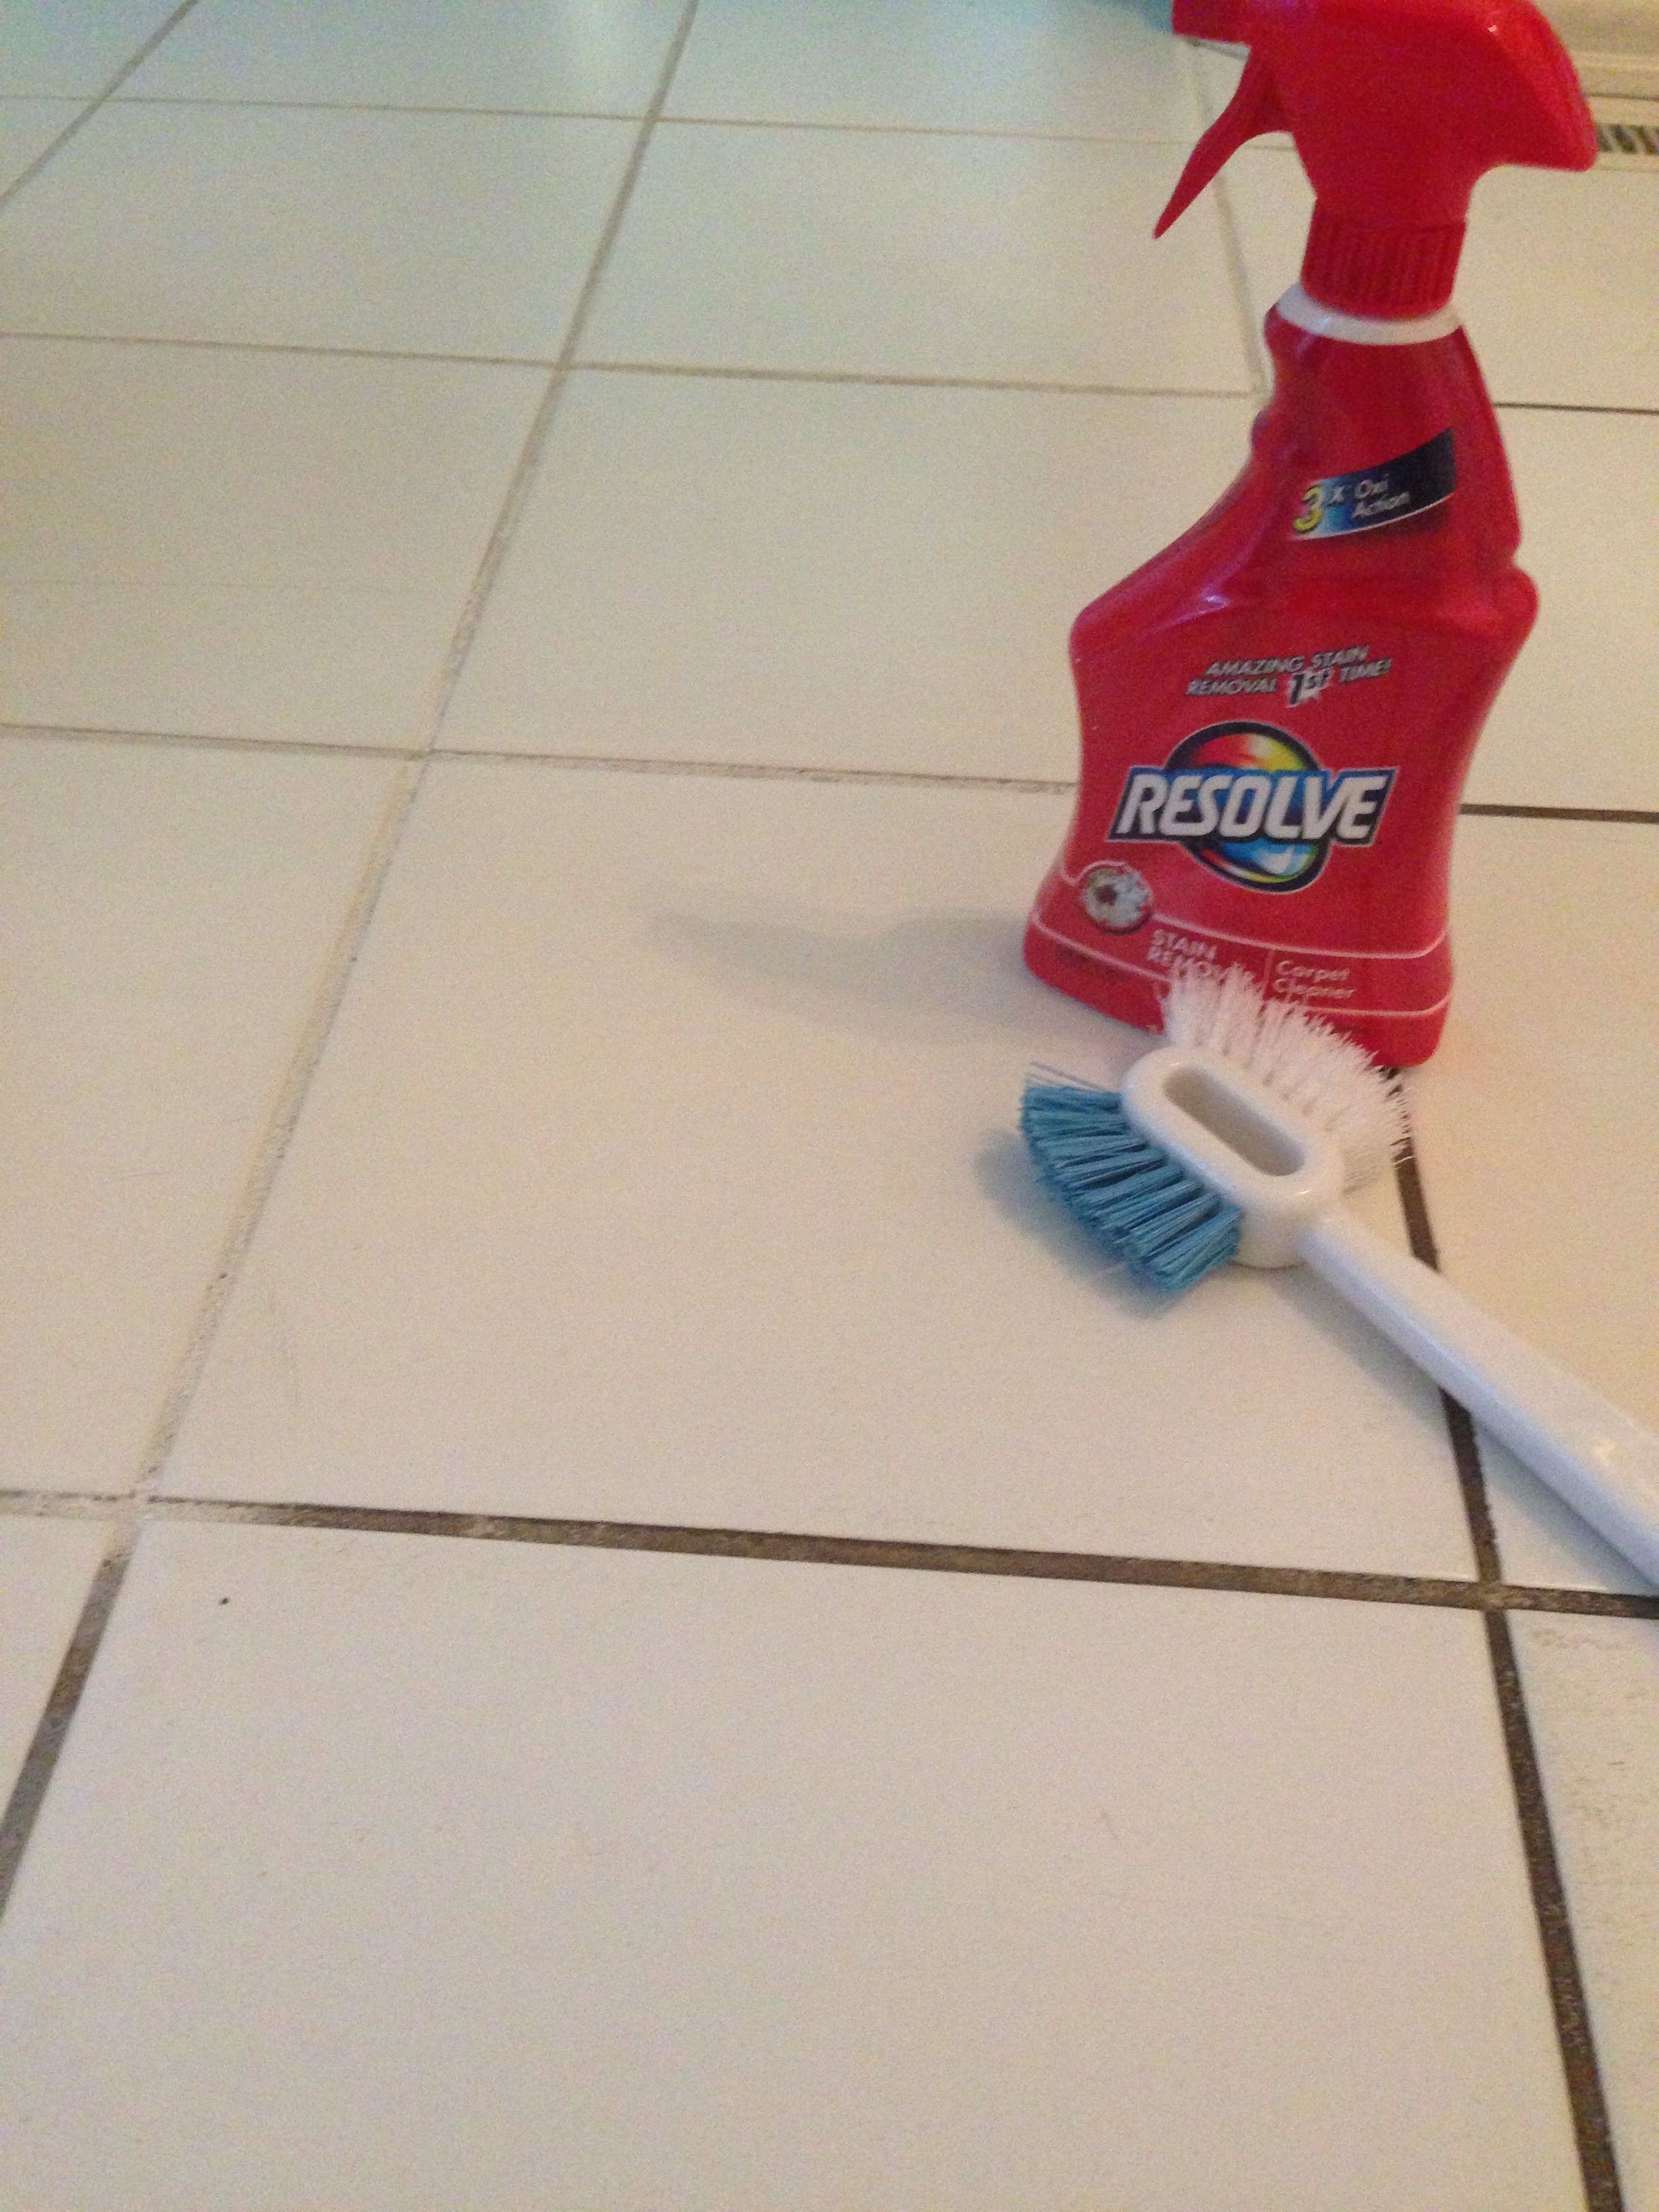 Resolve carpet cleaner to clean grout   Pinterest   Sodas  Sprays and Brushes. Resolve carpet cleaner to clean grout   Pinterest   Sodas  Sprays